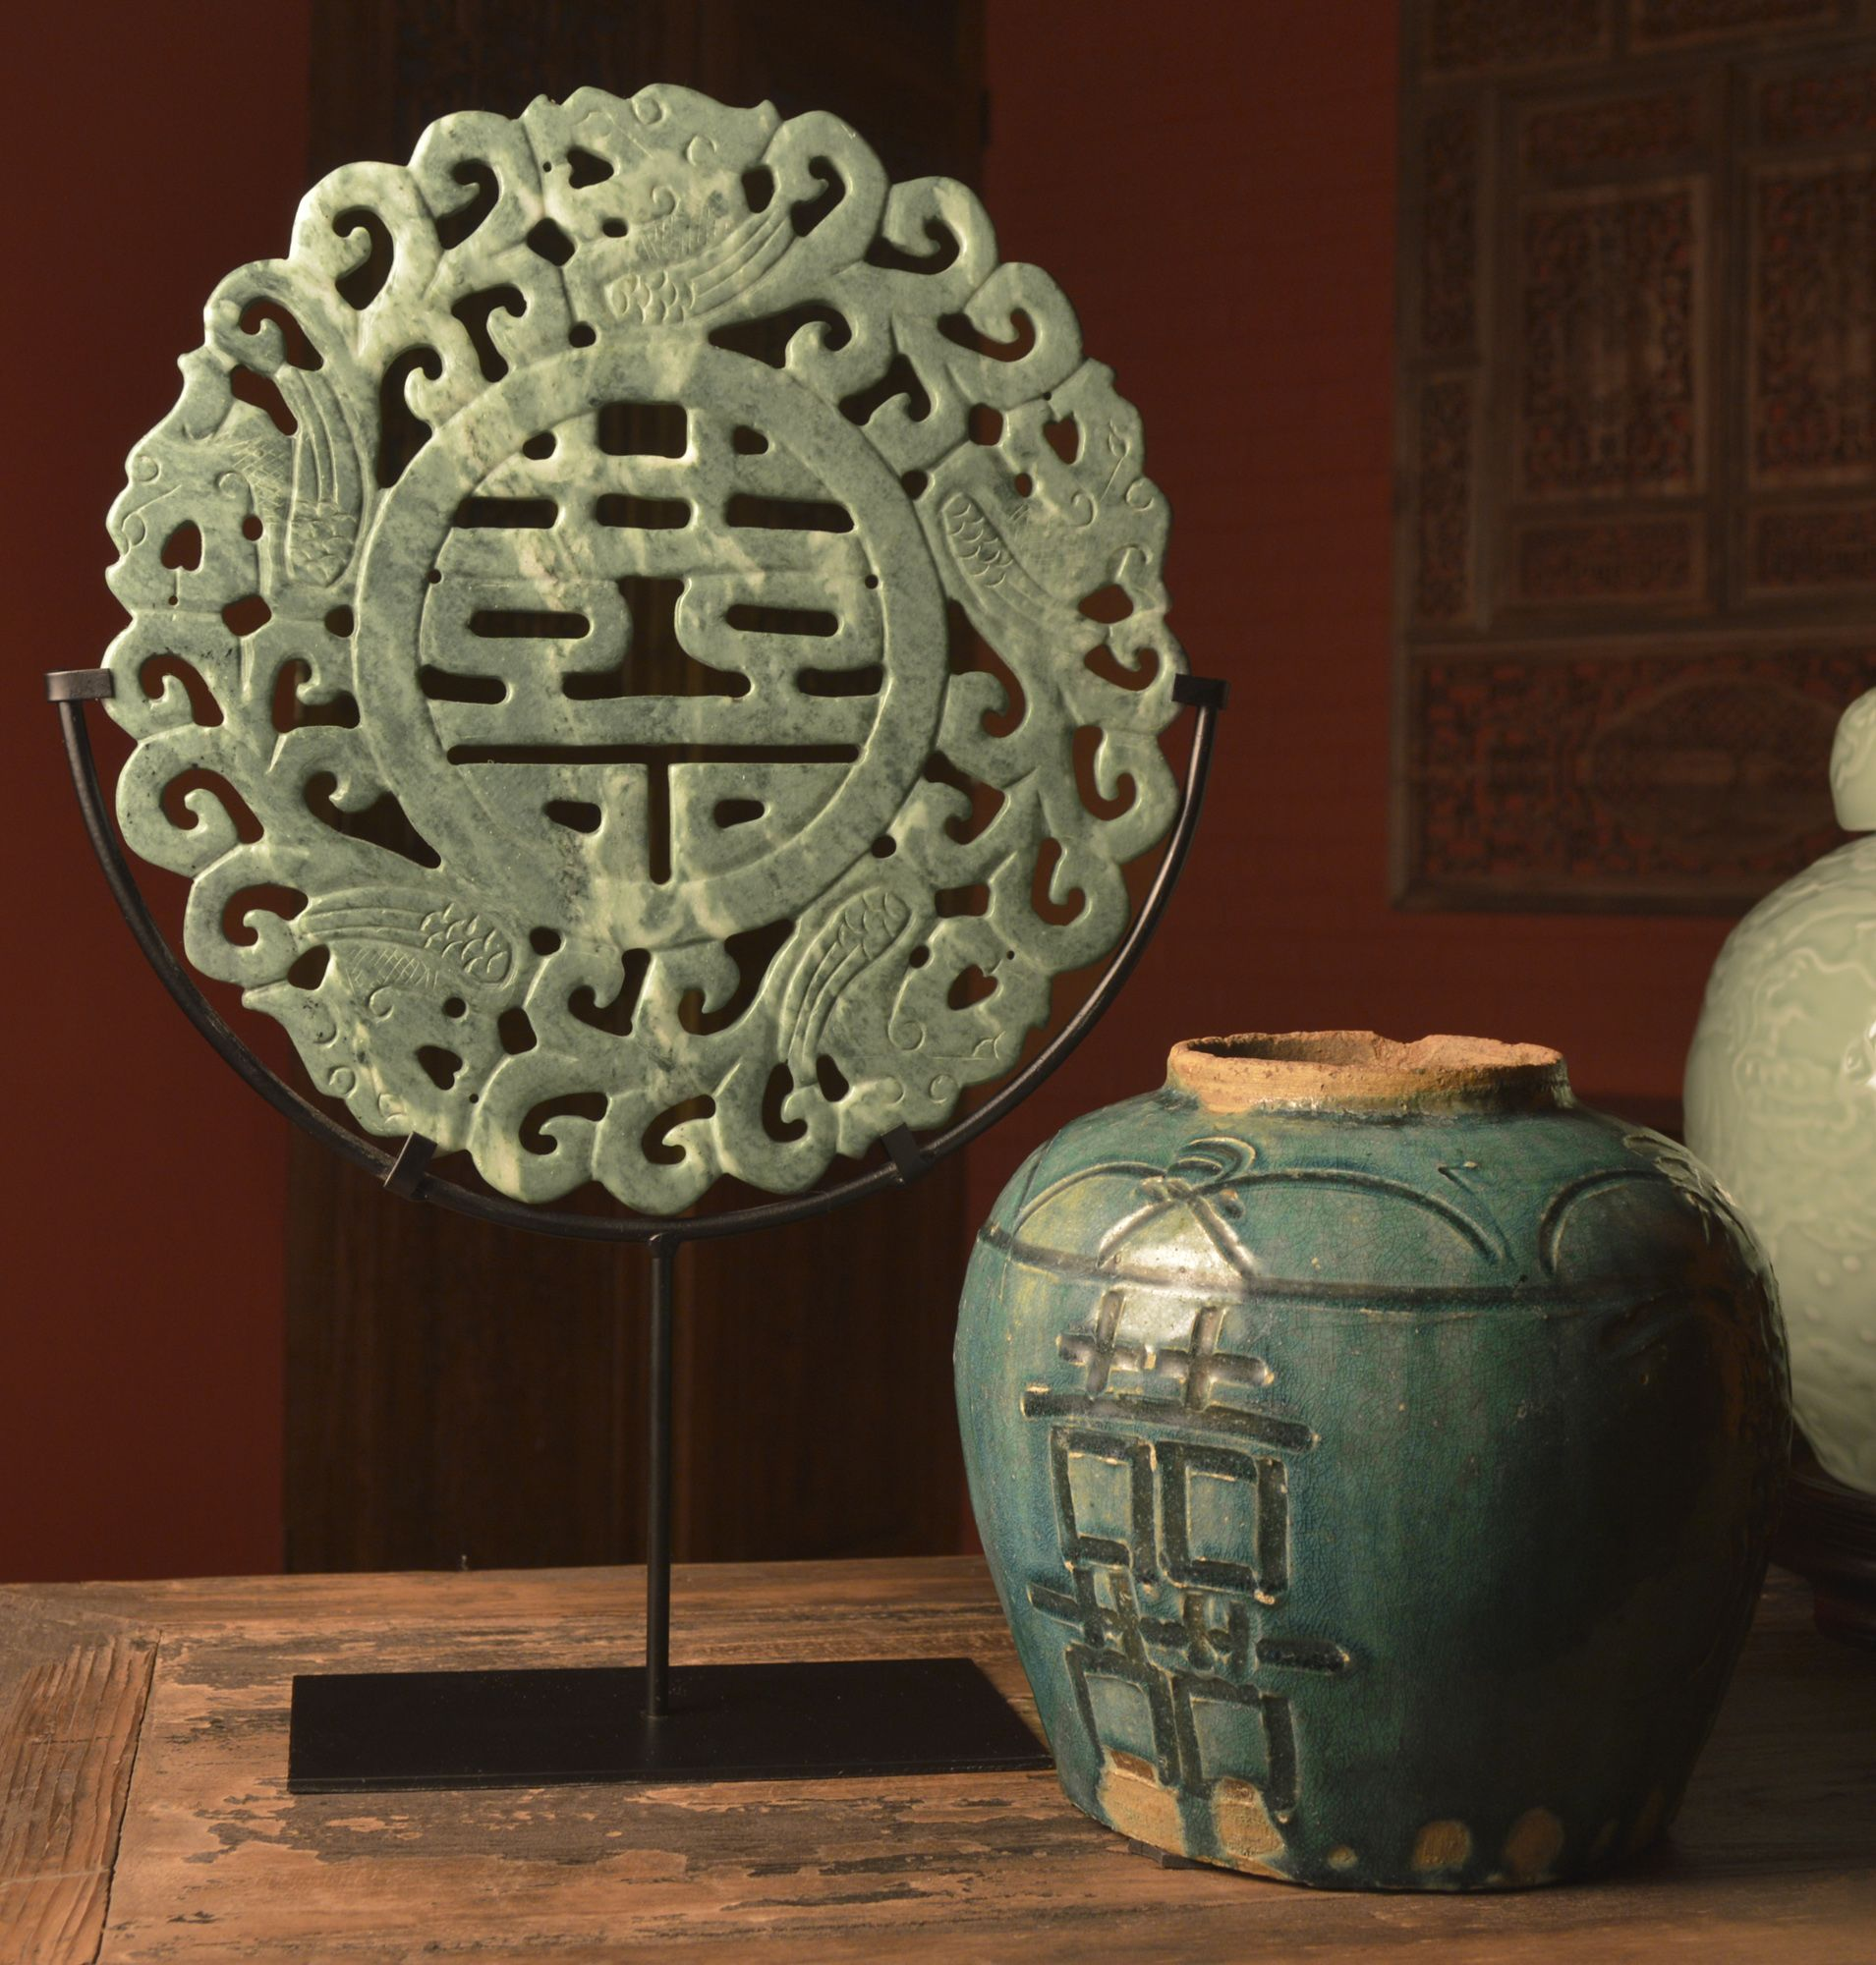 Jade Lee Kitchen: Jade Double Happiness Medallion With Iron Stand In 2019